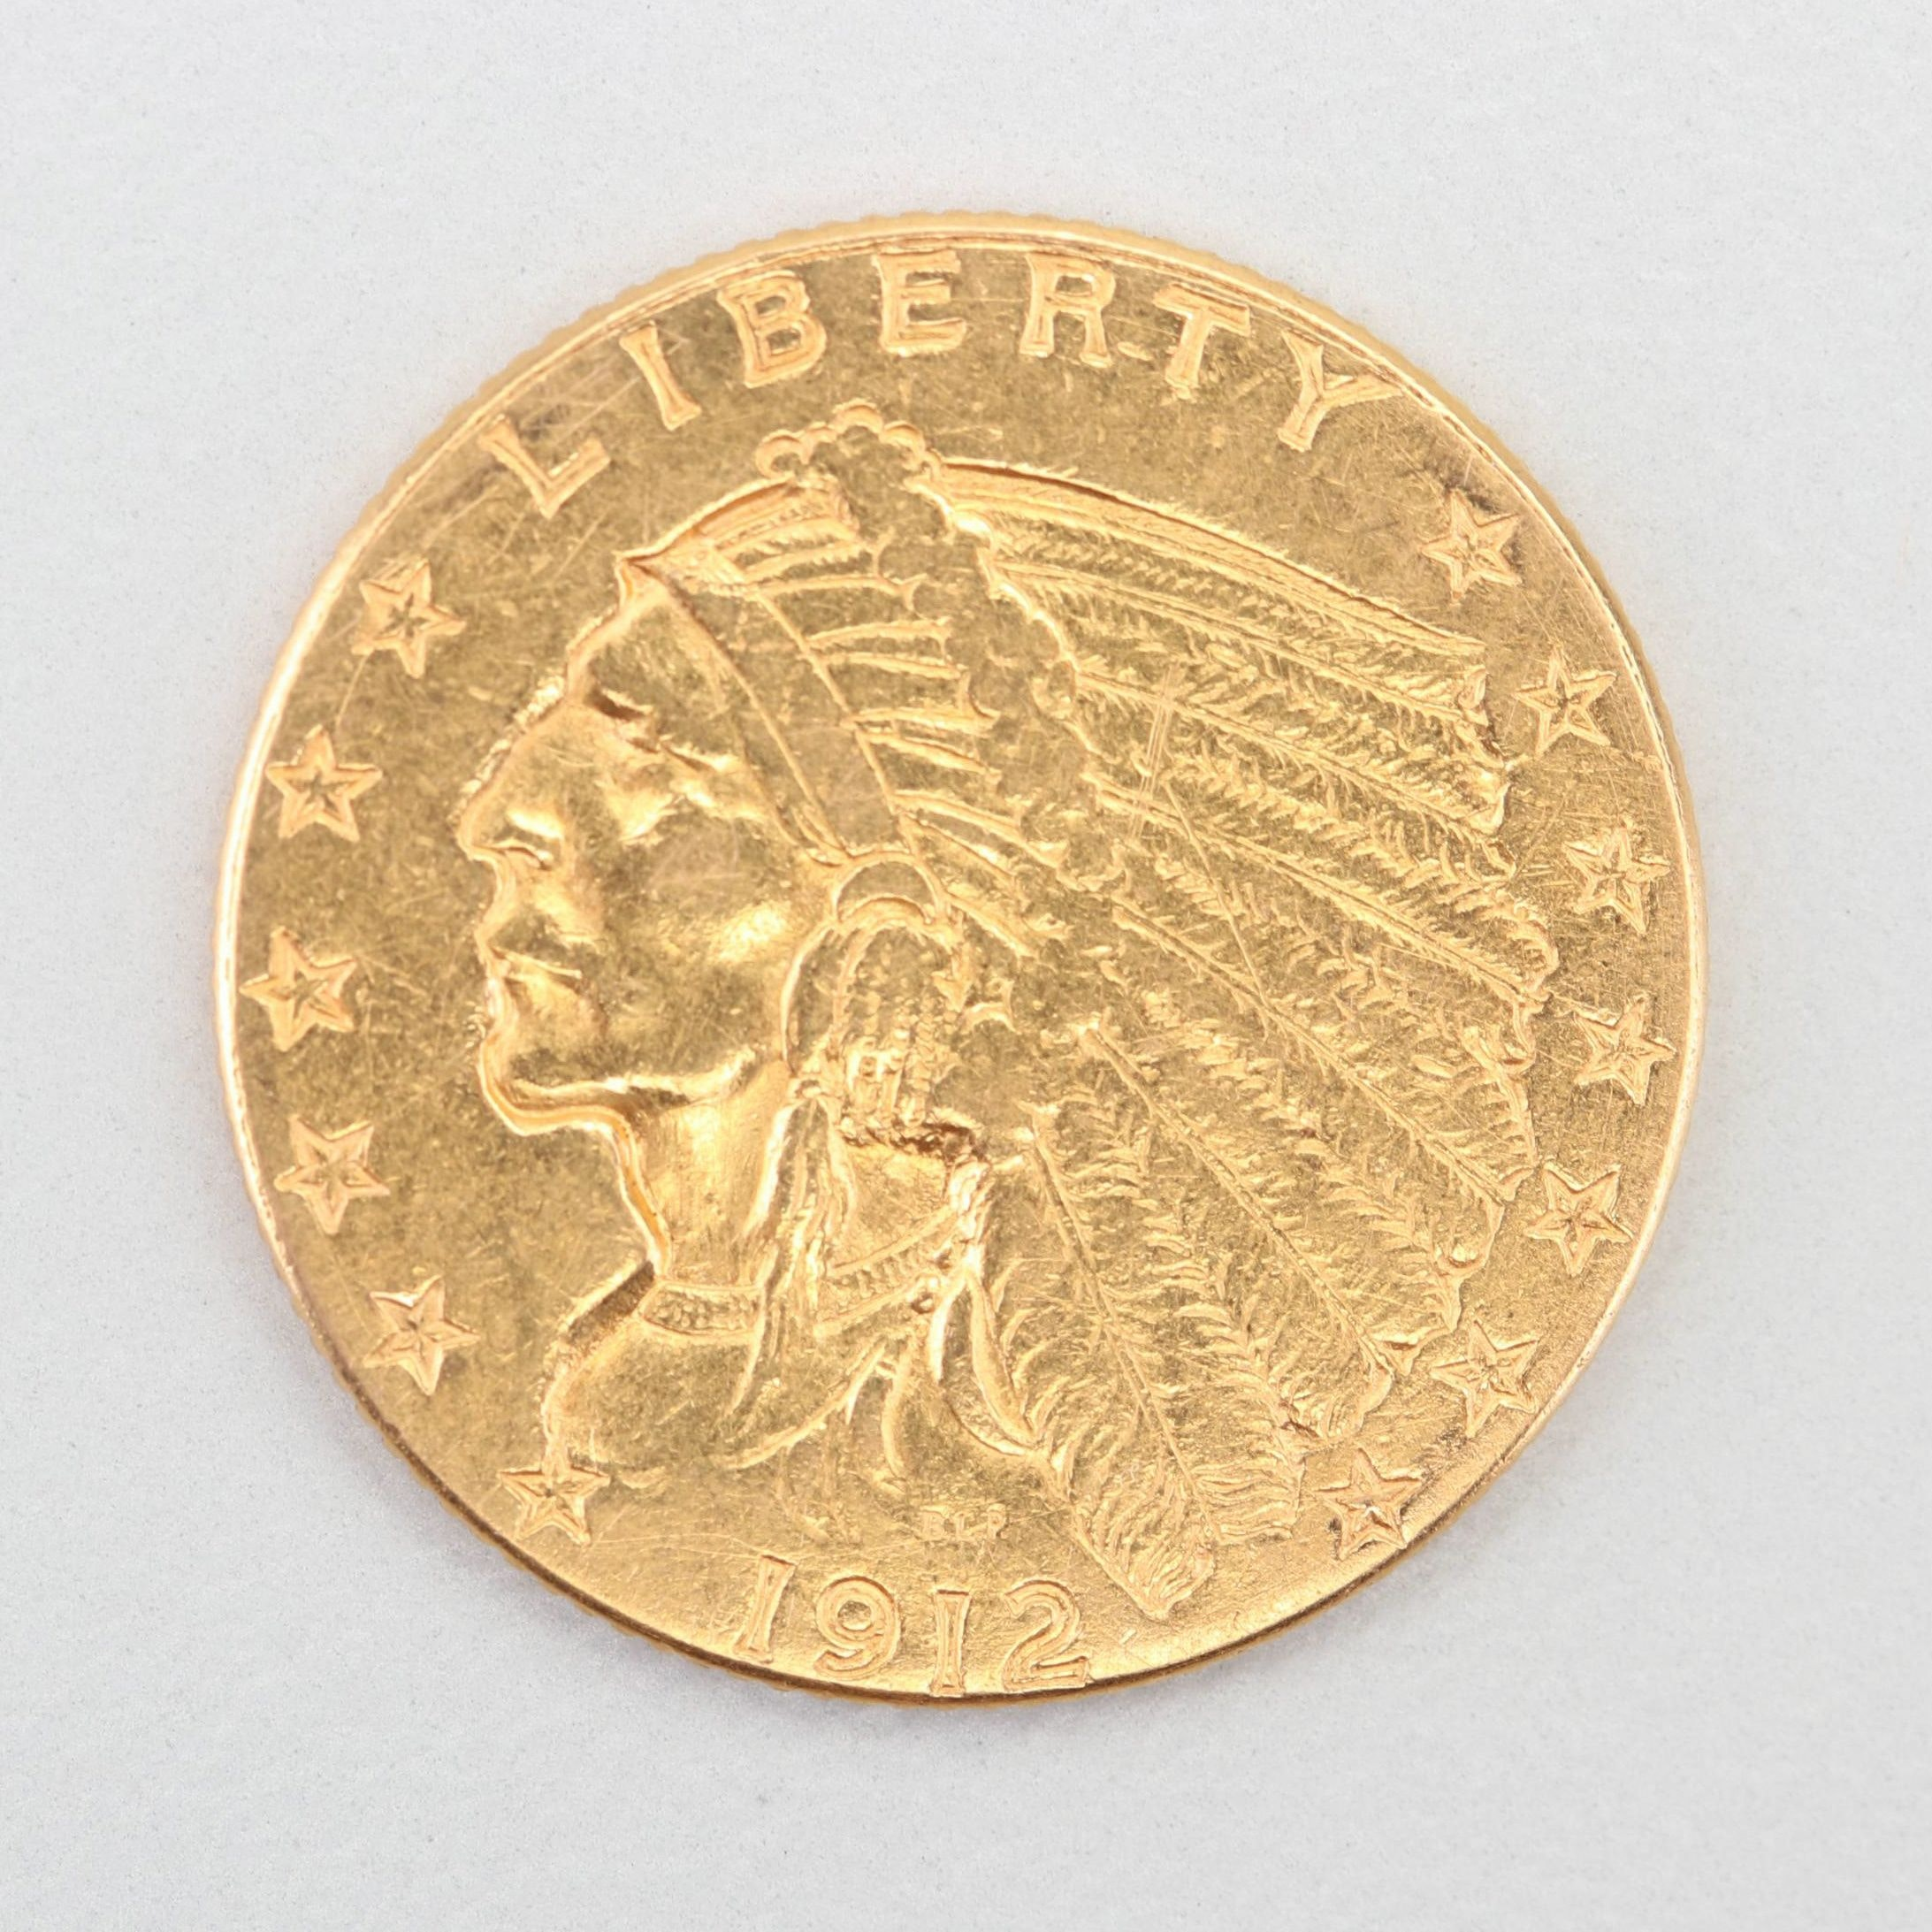 1912 Indian Head $2 1/2 Gold Coin